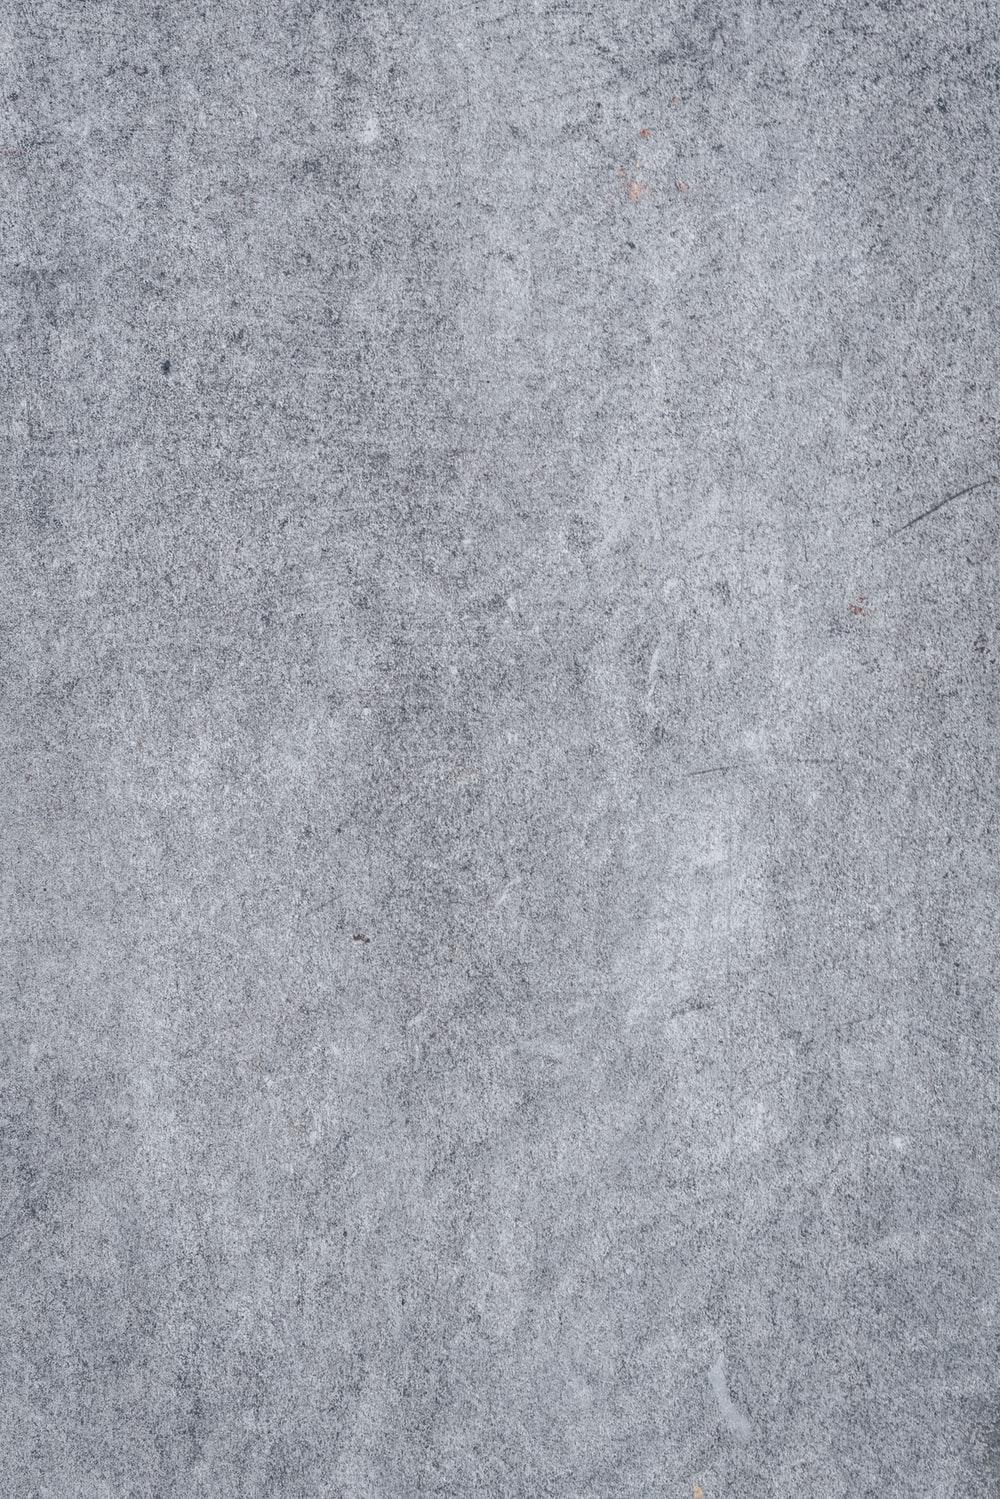 Grey Wallpapers: Free HD Download [500+ HQ]